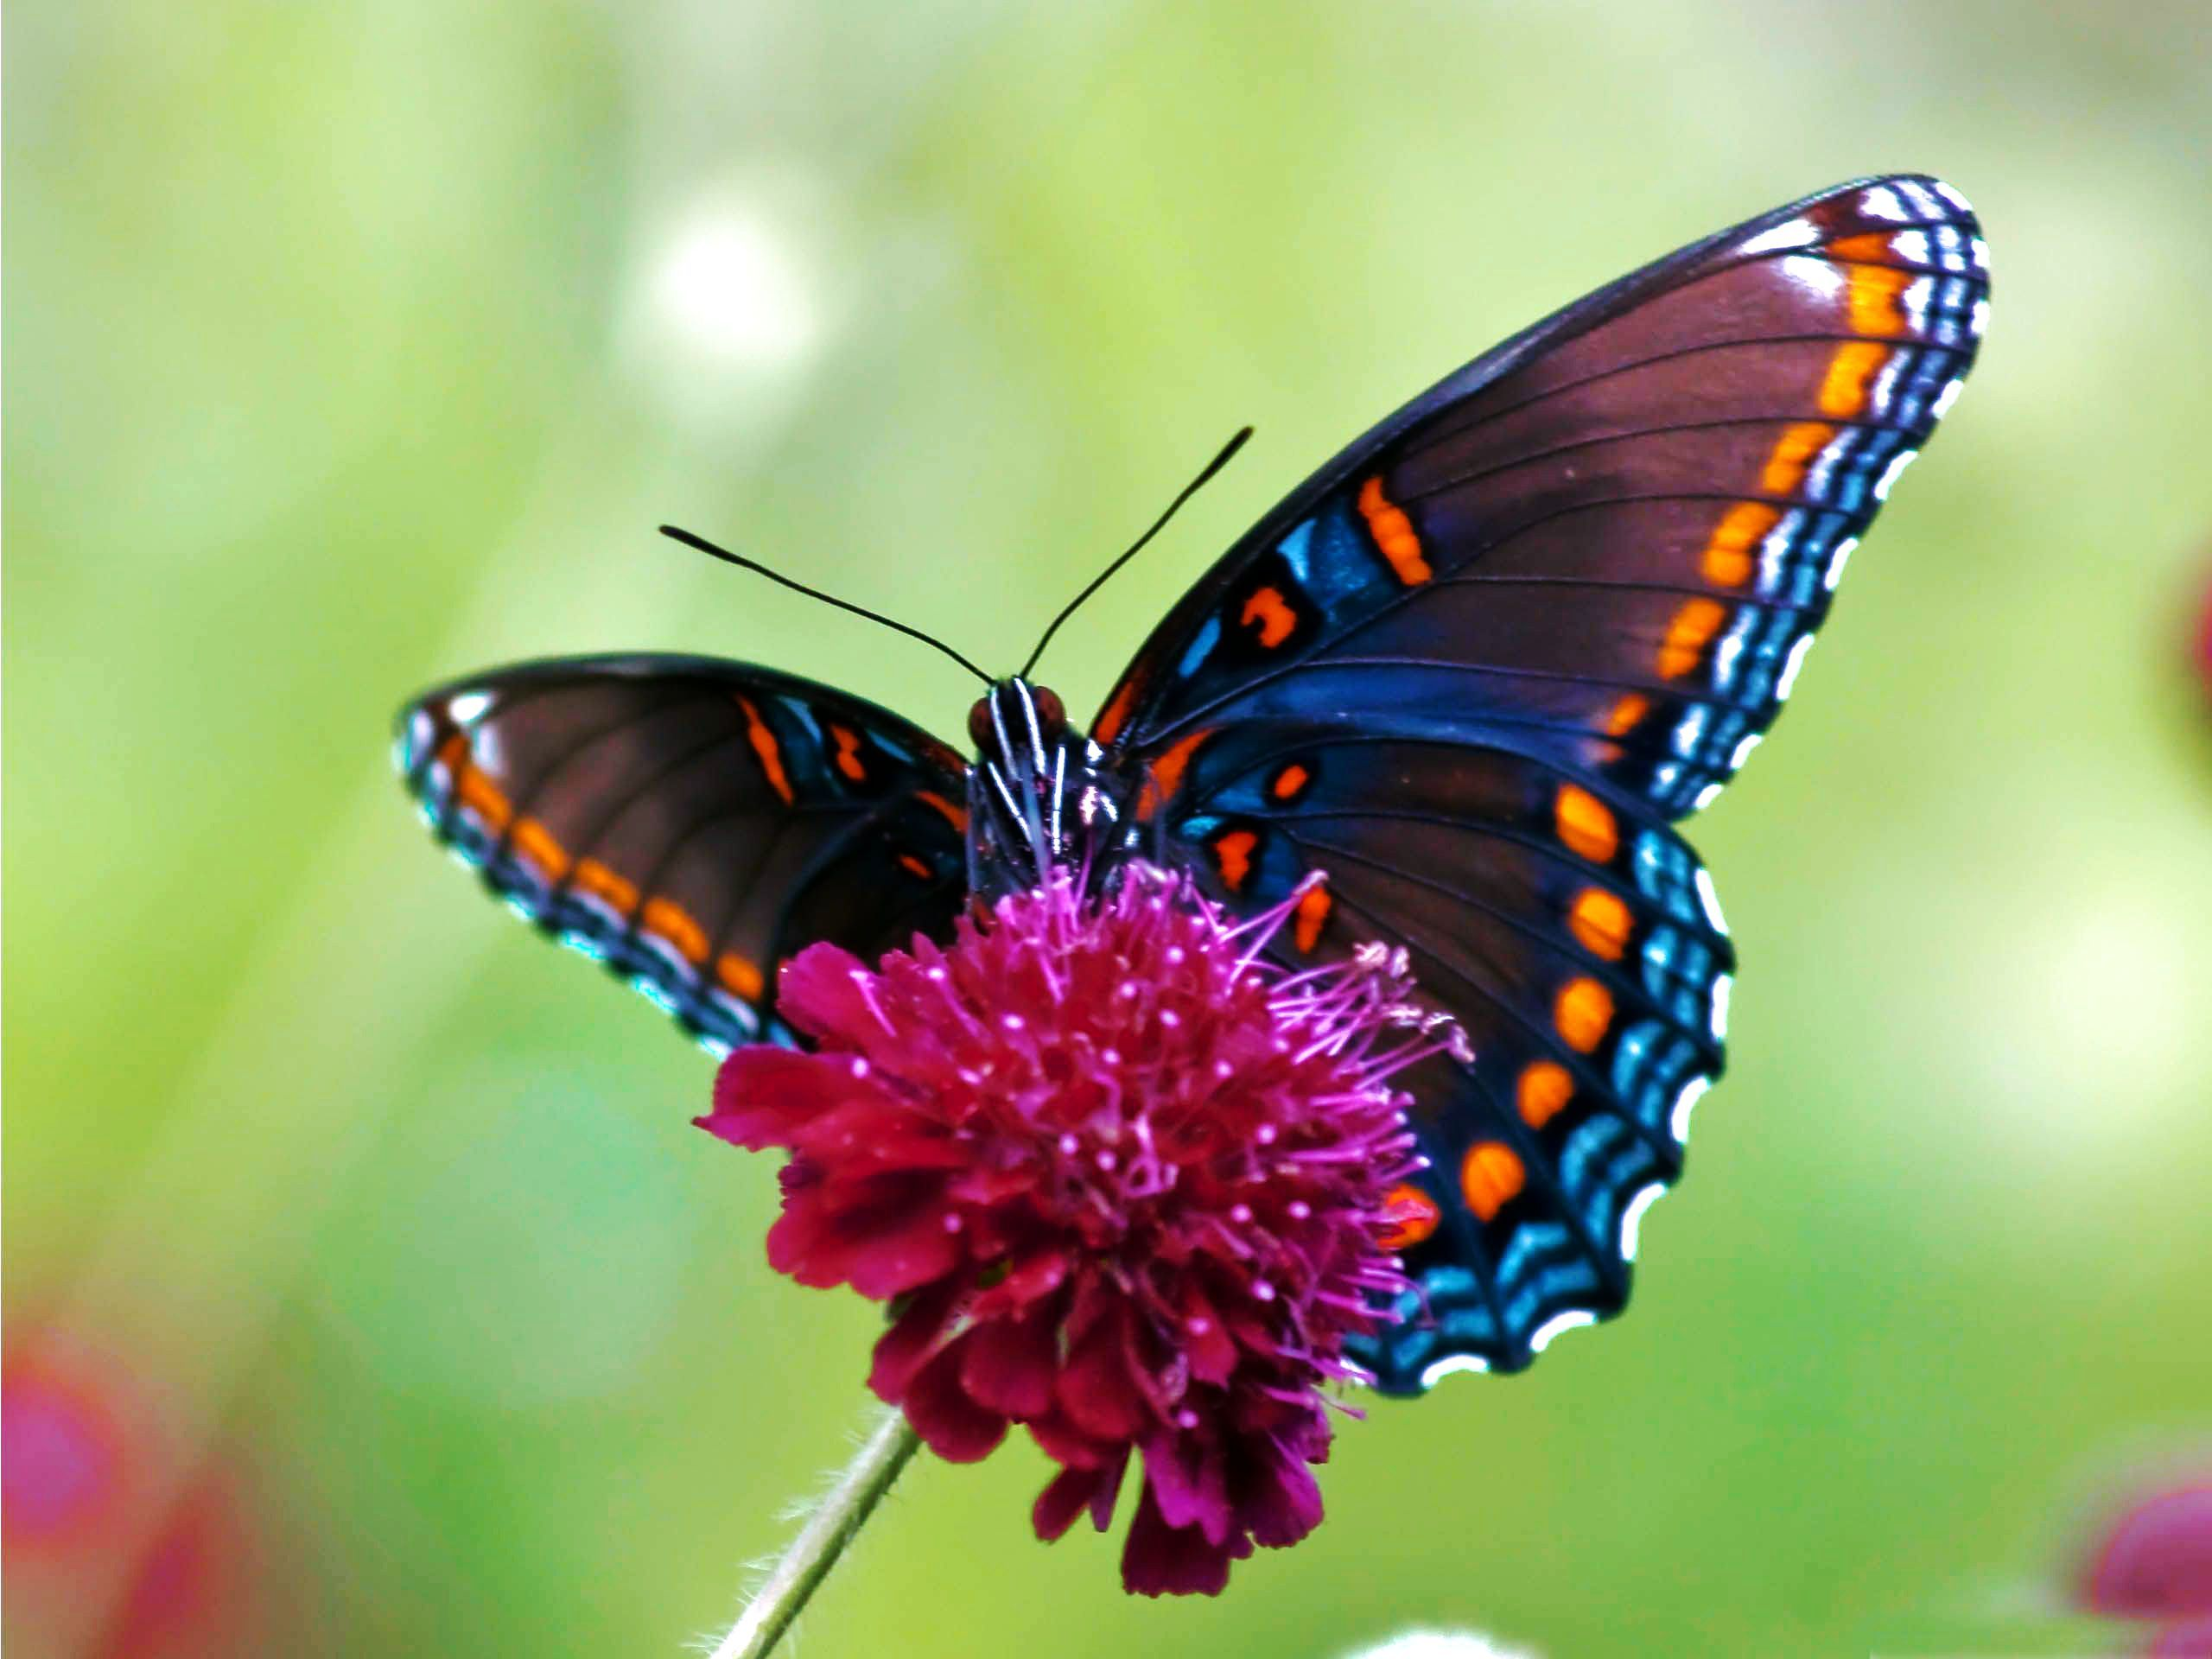 Colorful Butterflies Colorful Butterfly Wallpapers Hd Free 305004 Butterfly Pictures Butterfly On Flower Beautiful Butterflies